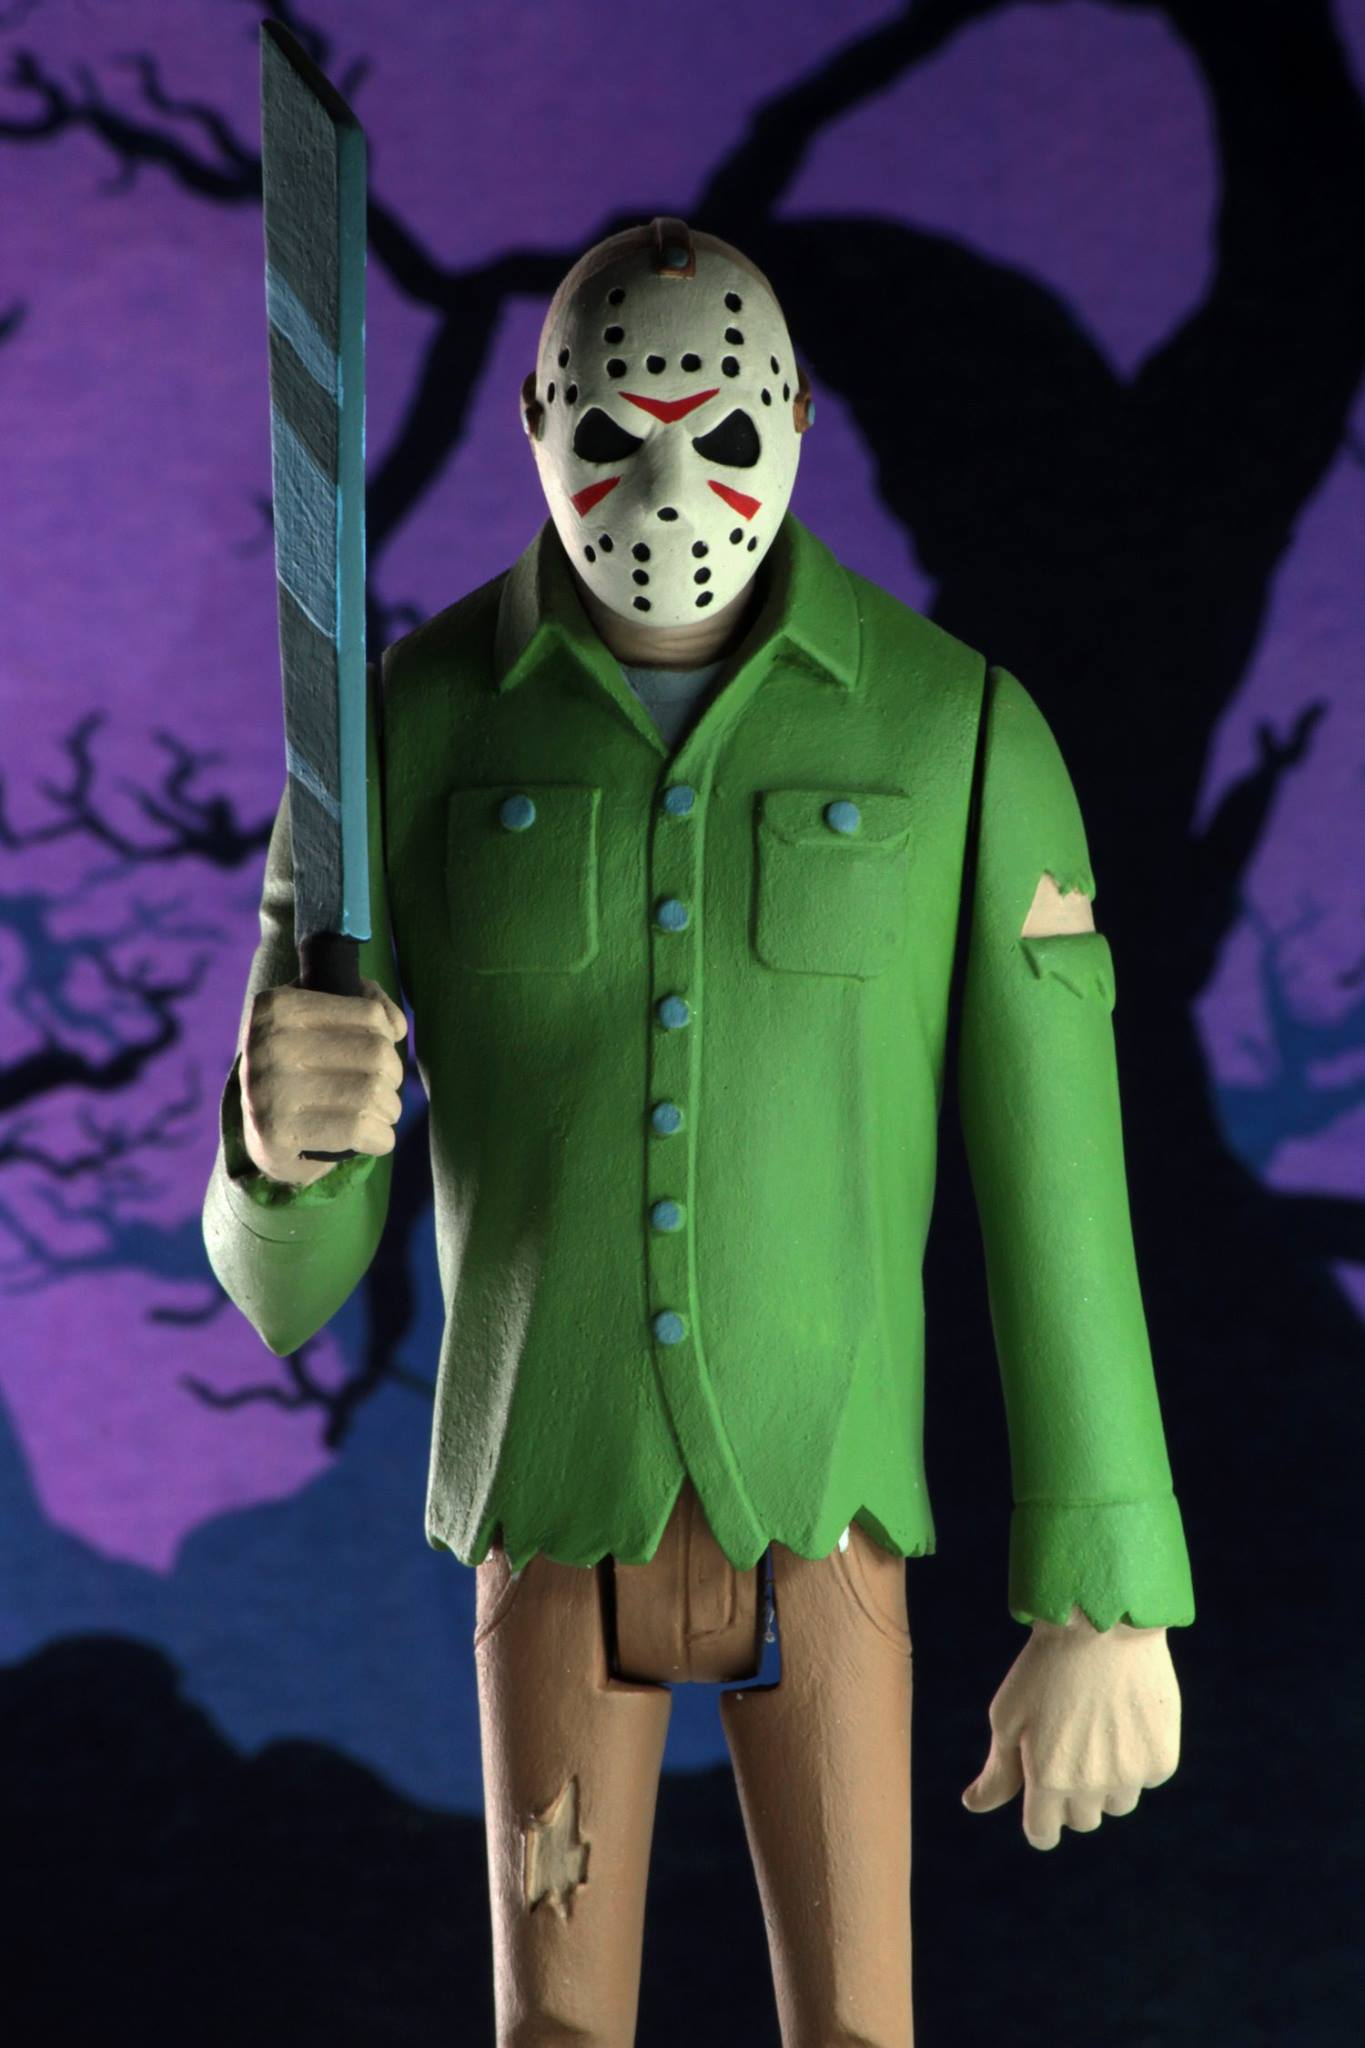 NECA Toony Terrors Jason Voorhees Friday the 13th Figure